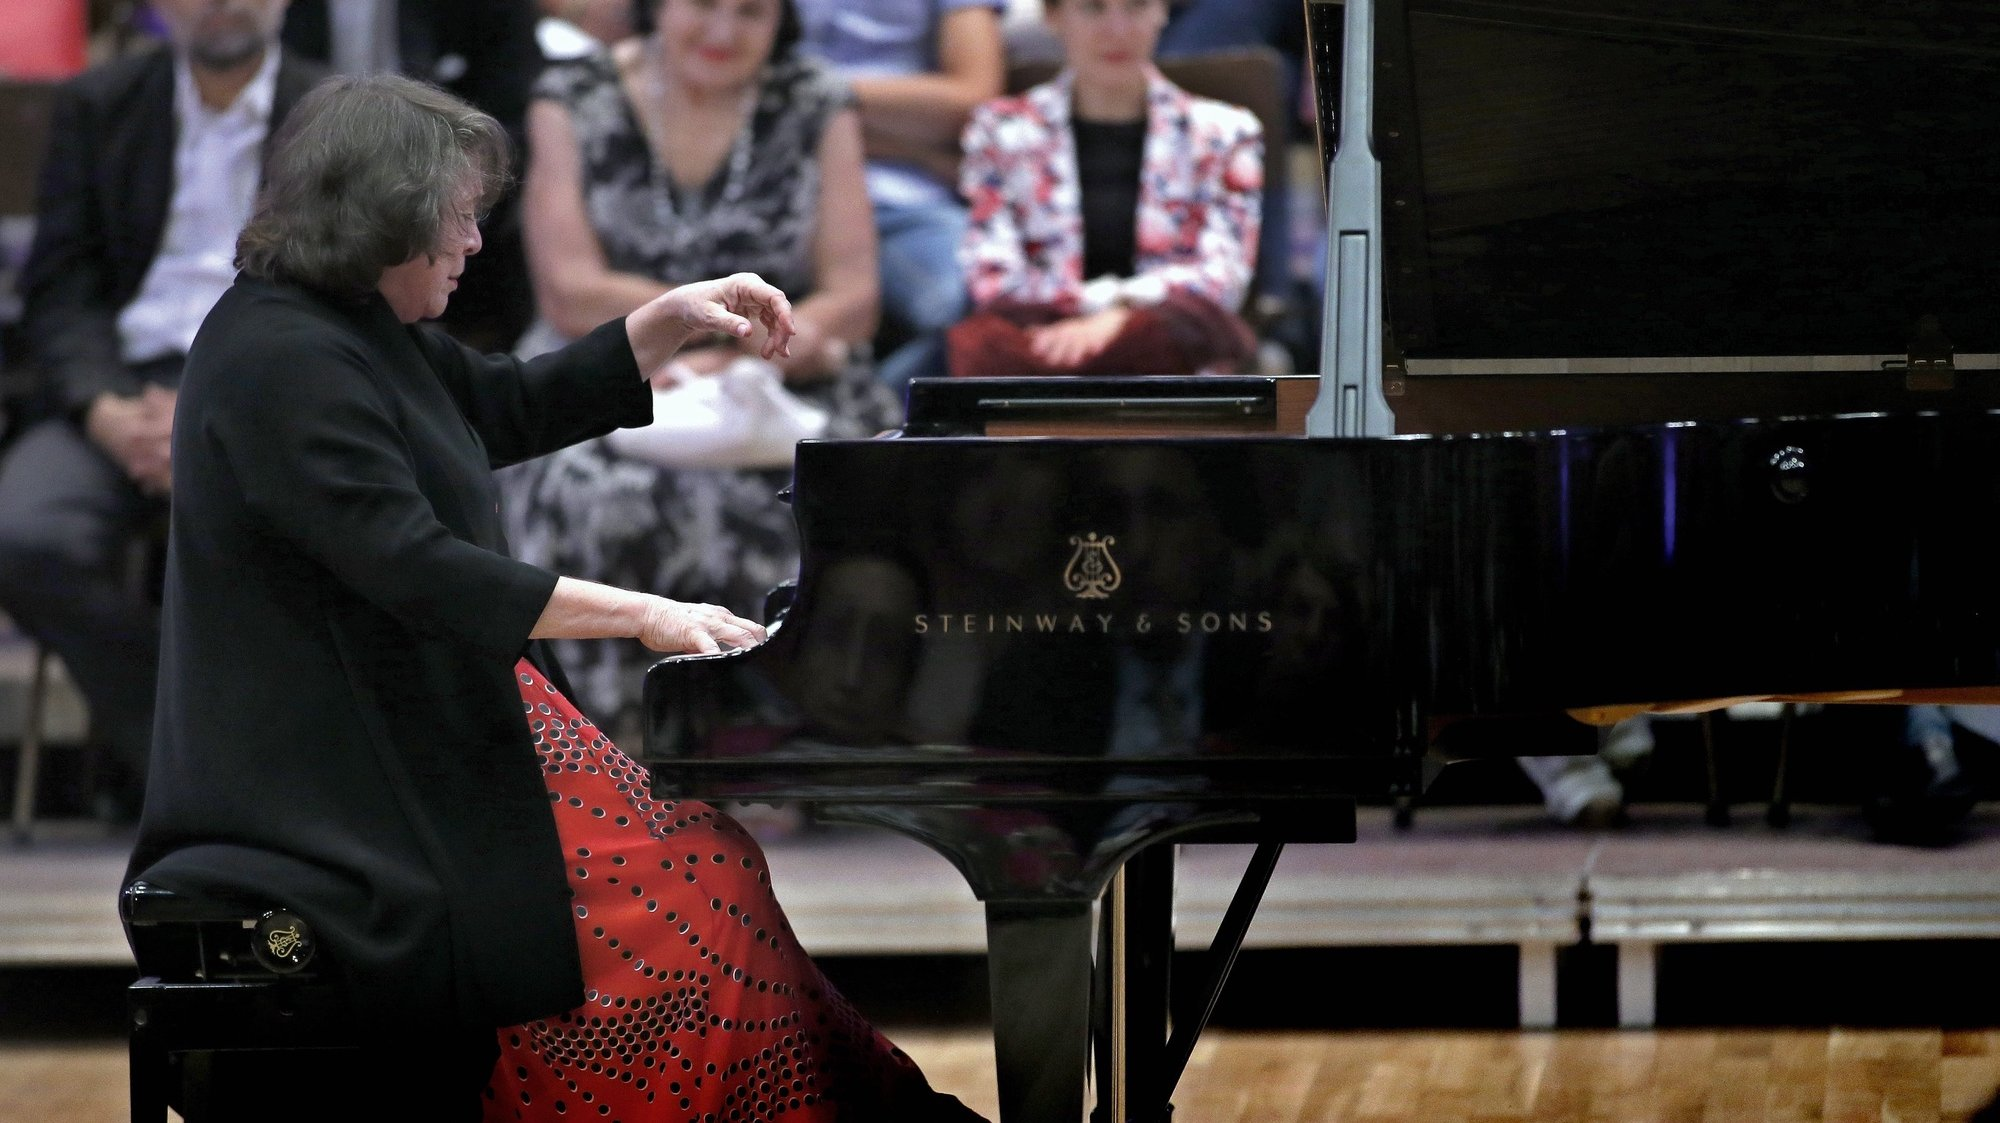 epa04917550 Russian pianist and teacher Elisabeth Leonskaja performs a recital named 'In Memoriam of Sviatoslav Richter', on the stage of Romanian Athenaeum concert hall during the George Enescu International Festival in Bucharest, Romania, 06 September 2015. Considered by the critics as 'The last great Lady of the Soviet School', Leonskaja was awarded in 2006 with the Austrian Cross of Honour, 1-st Class, for  Science and Art, the highest award of its kind in Austria. The George Enescu Festival, held since 1958 every two years, is the biggest classical music festival held in Romania, in honor of famous Romanian composer and violinist George Enescu.  EPA/ROBERT GHEMENT